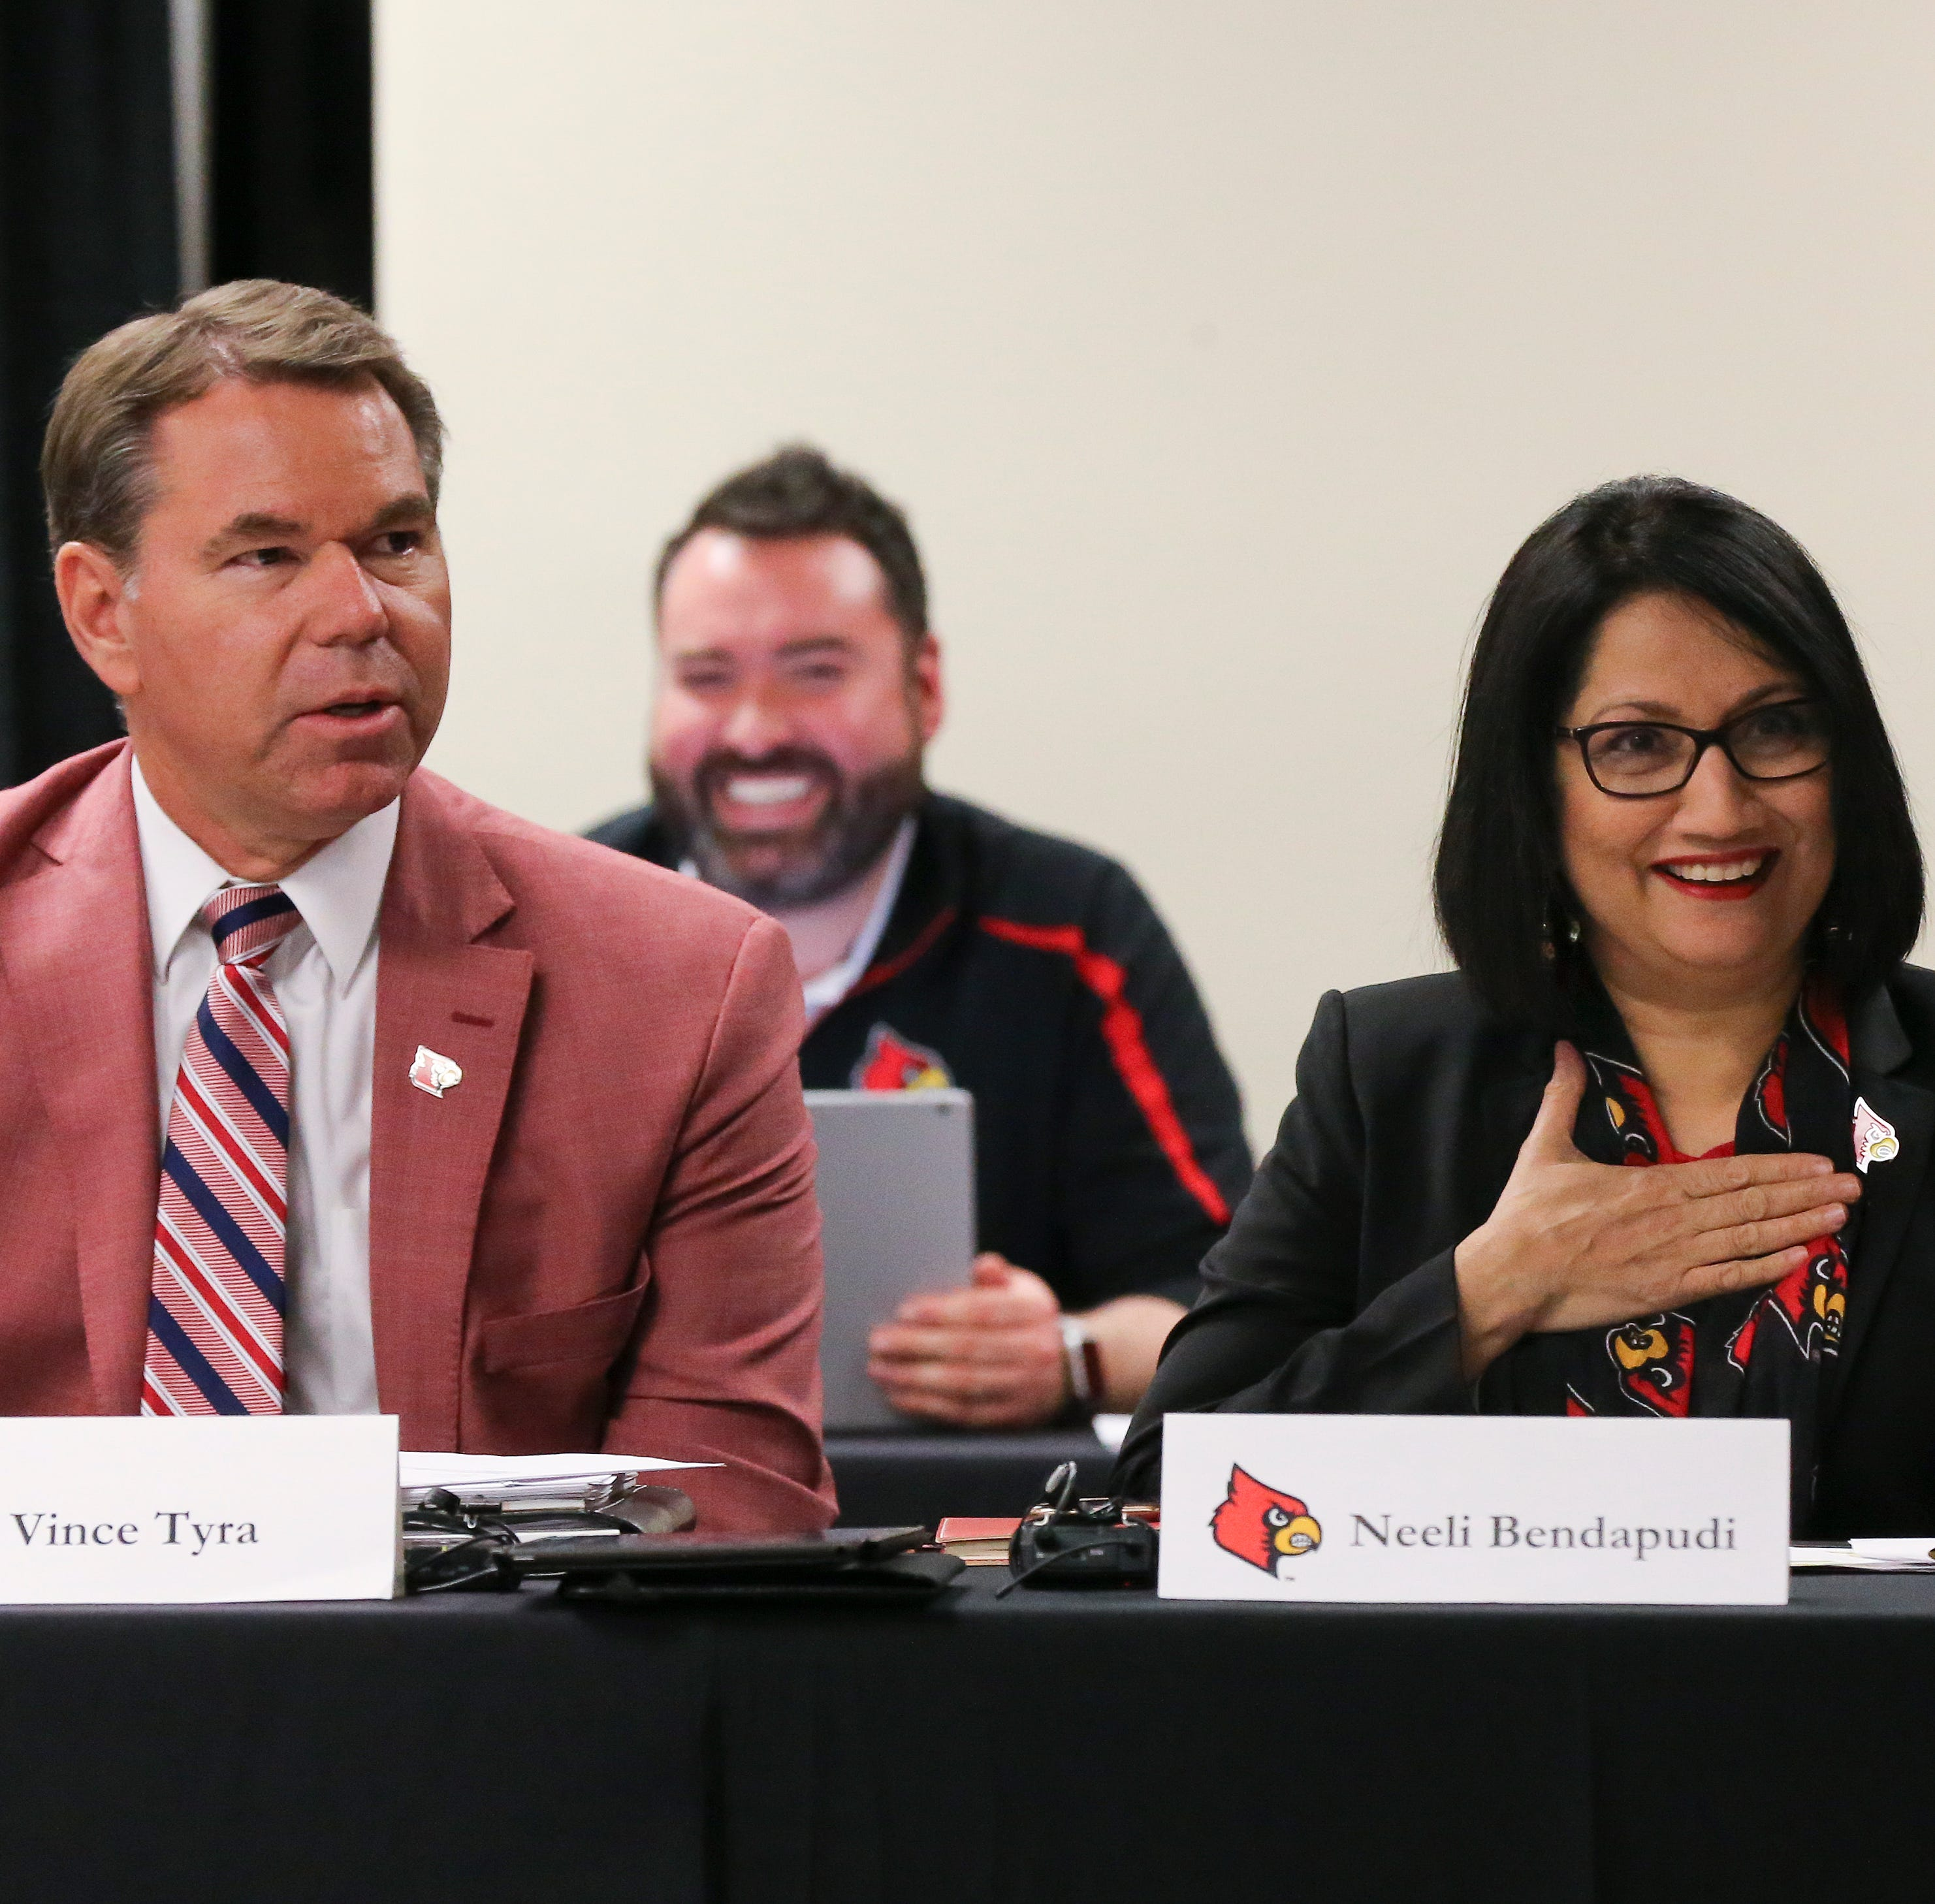 Louisville president floats plan to shift power from ULAA to smaller committee